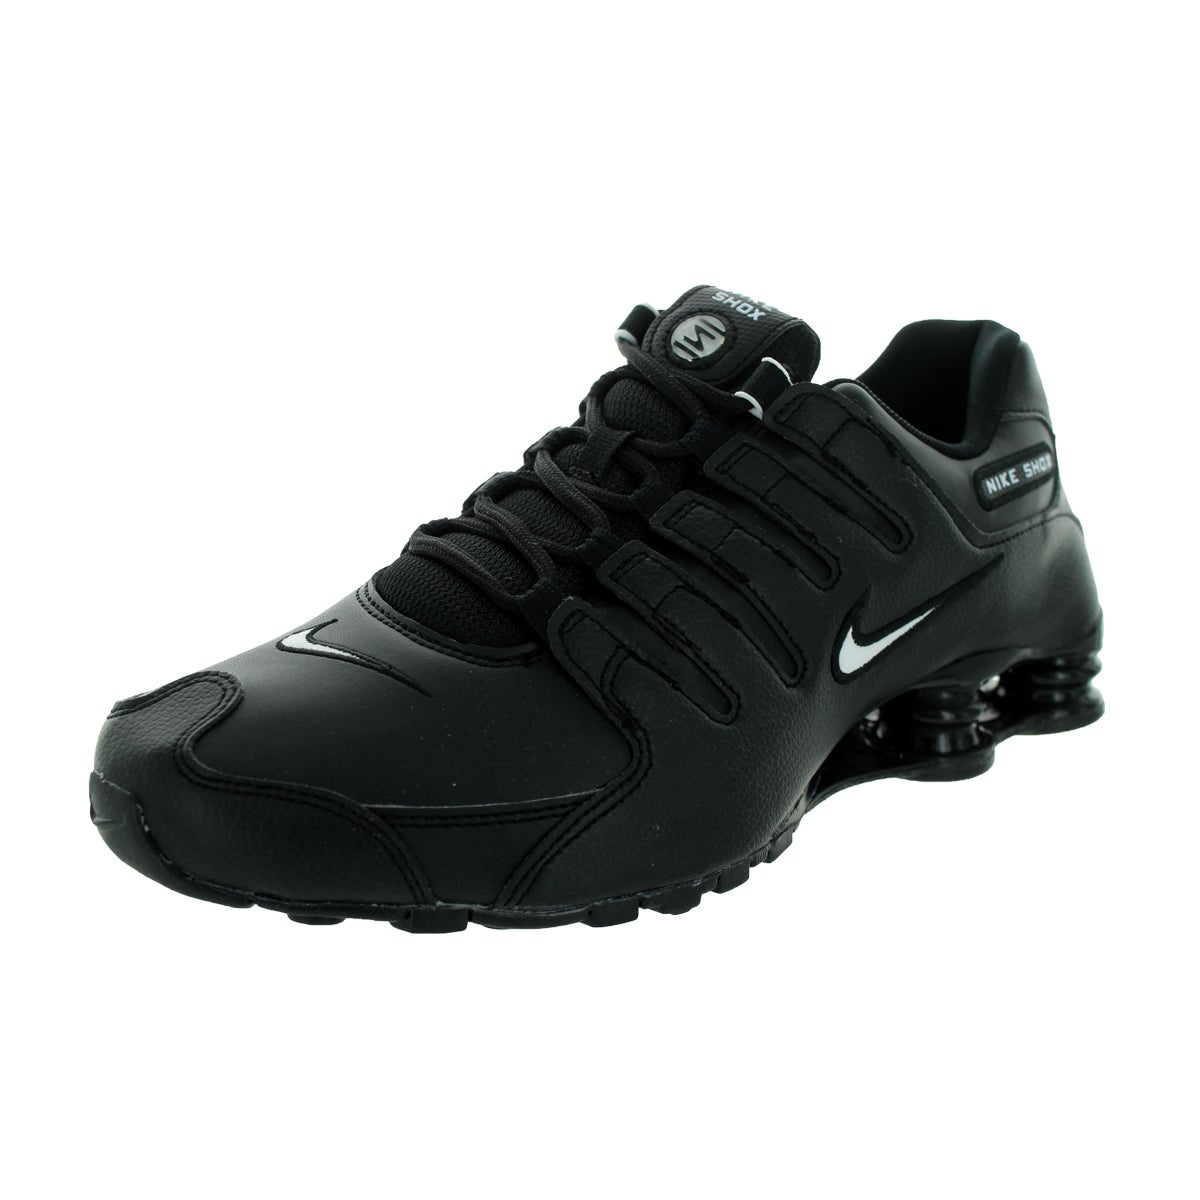 info for c06bc d1bbb Shop Nike Men s Shox NZ EU Black, White, Black Leather Running Shoes Size  8.5 - Free Shipping Today - Overstock - 13395210